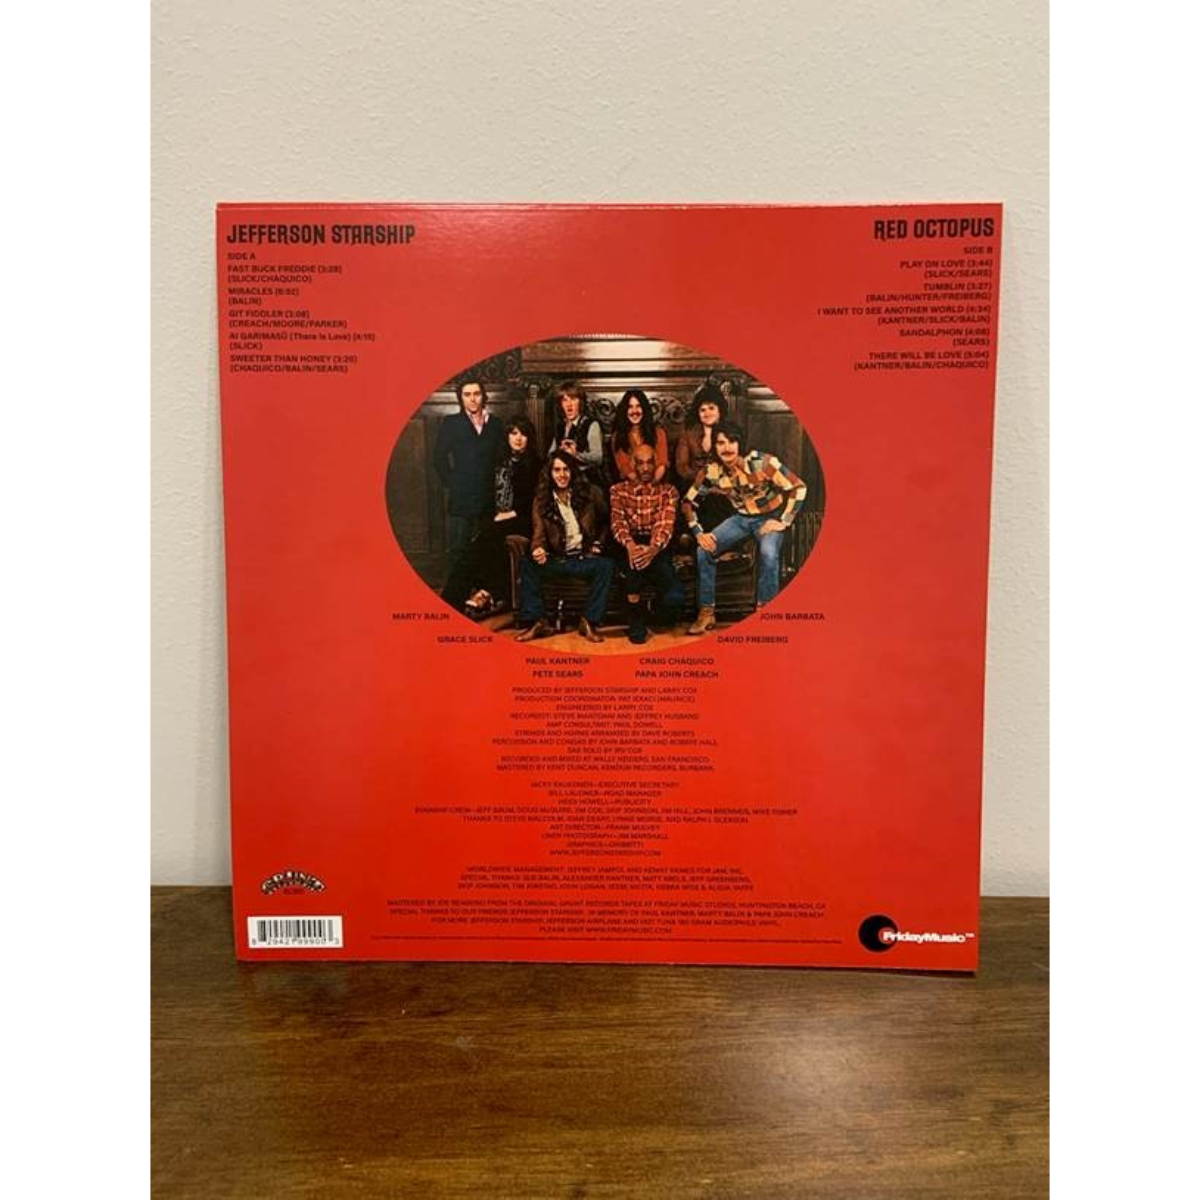 Jefferson Starship - Red Octopus (180 Gram Translucent Red Audiophile Vinyl/45th Anniversary/Gold Embossed Die-Cut Cover)